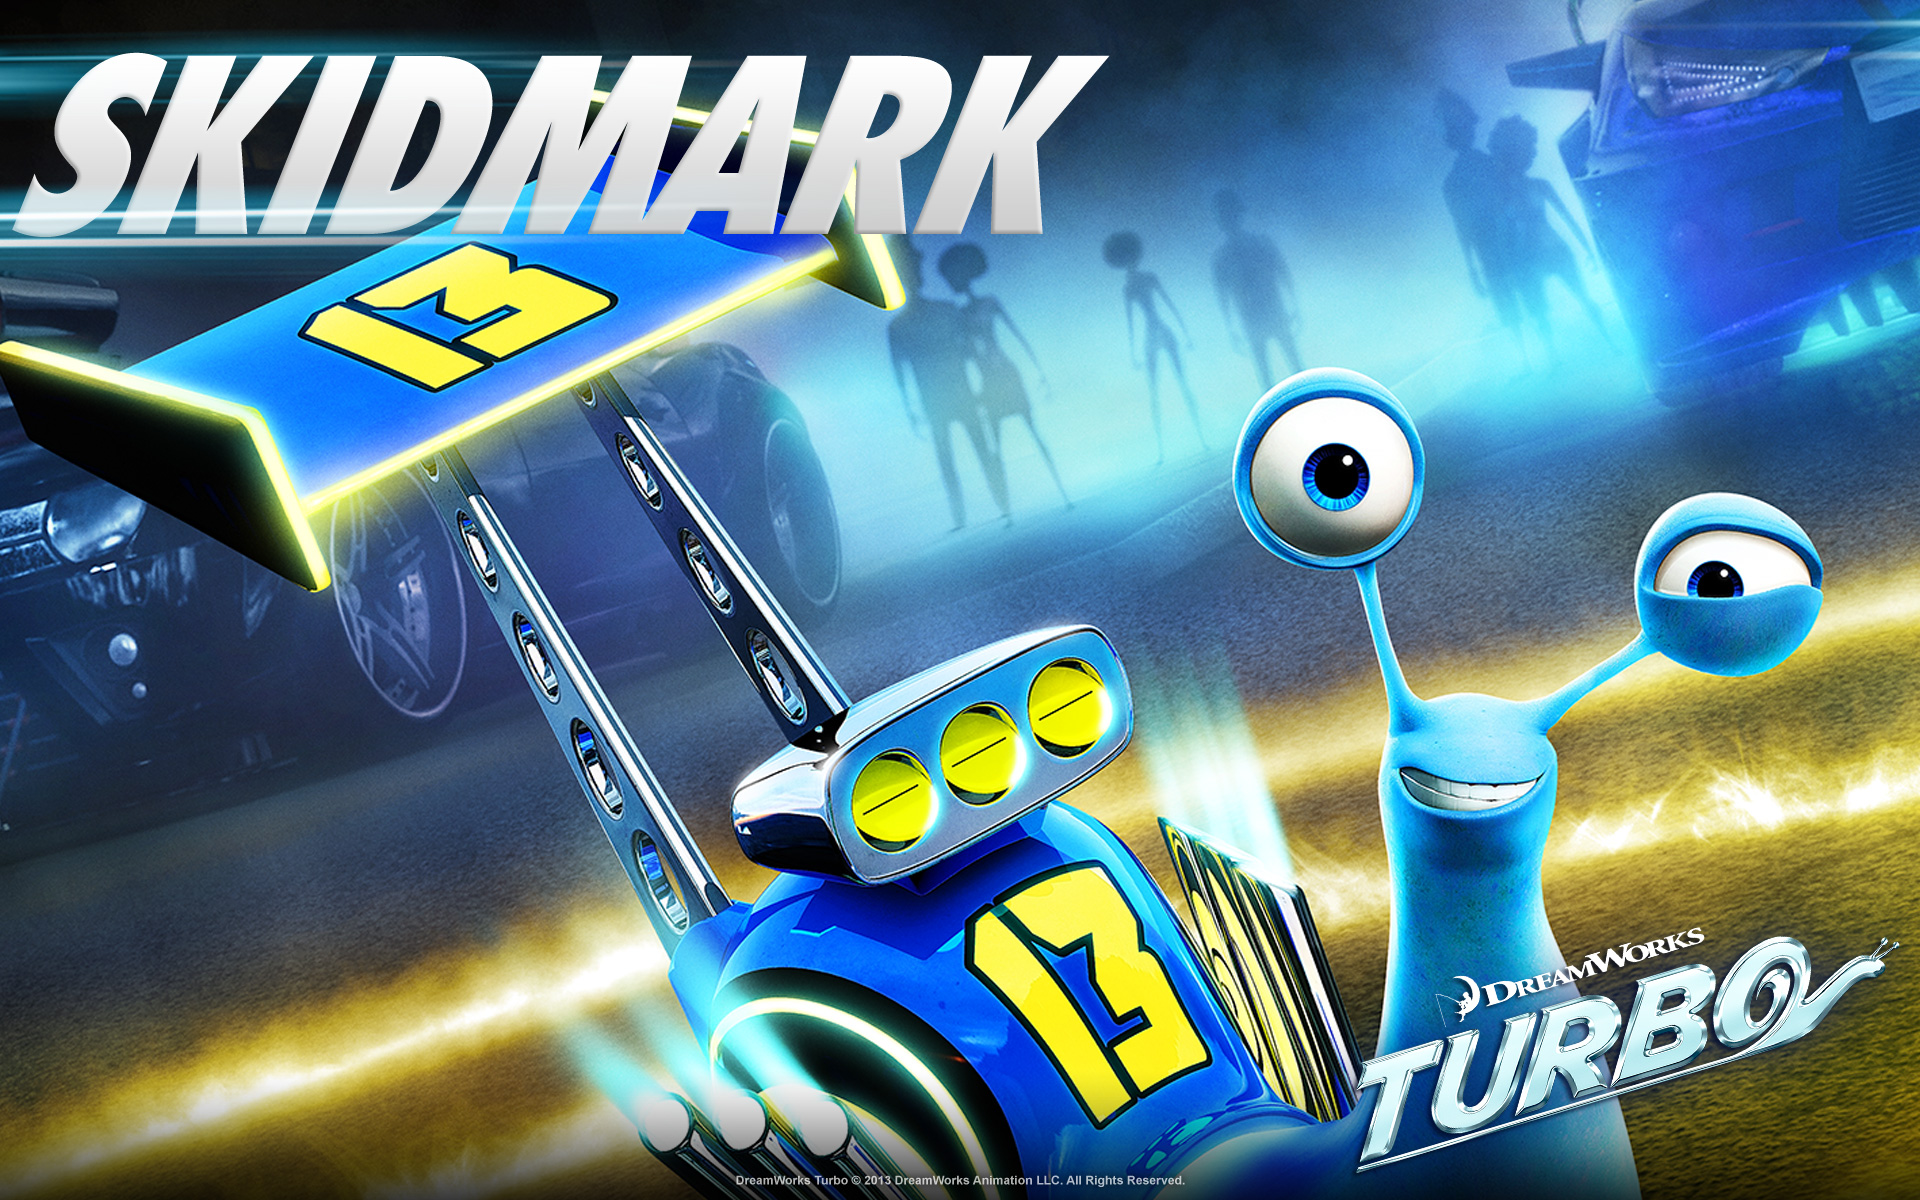 Skidmark the movie